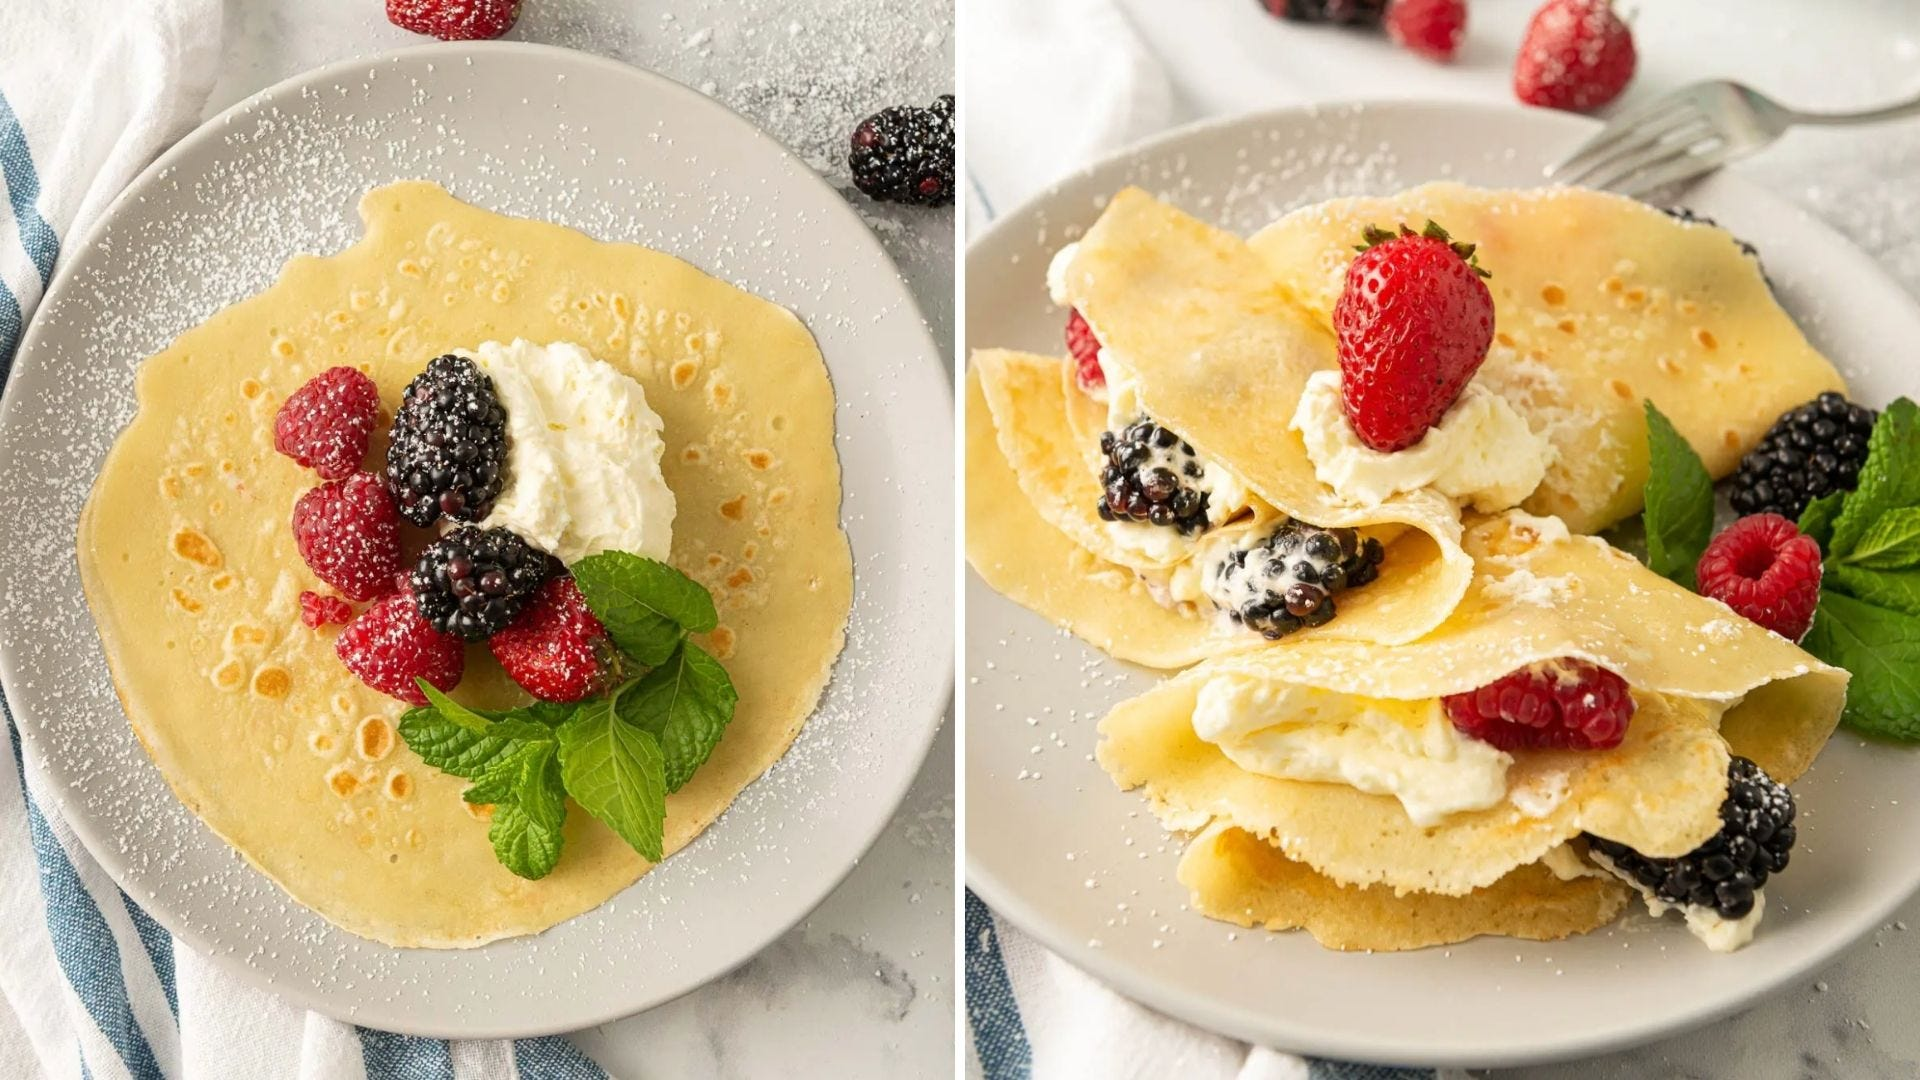 An open crepe with berries inside and several folded crepes